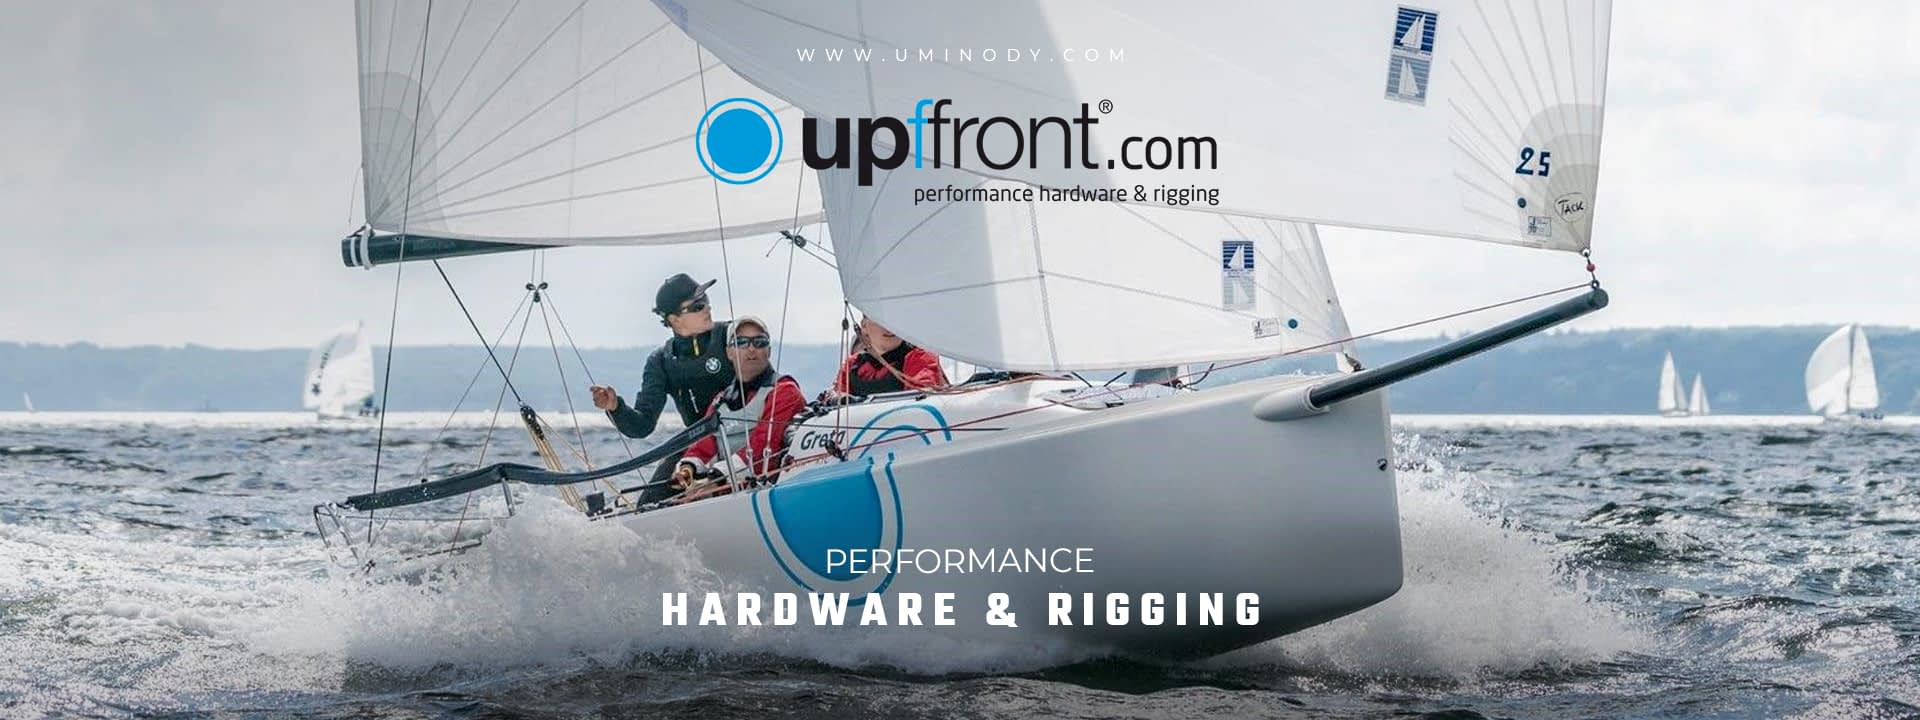 Upffront.com - Your Source for Performance Hardware & Rigging